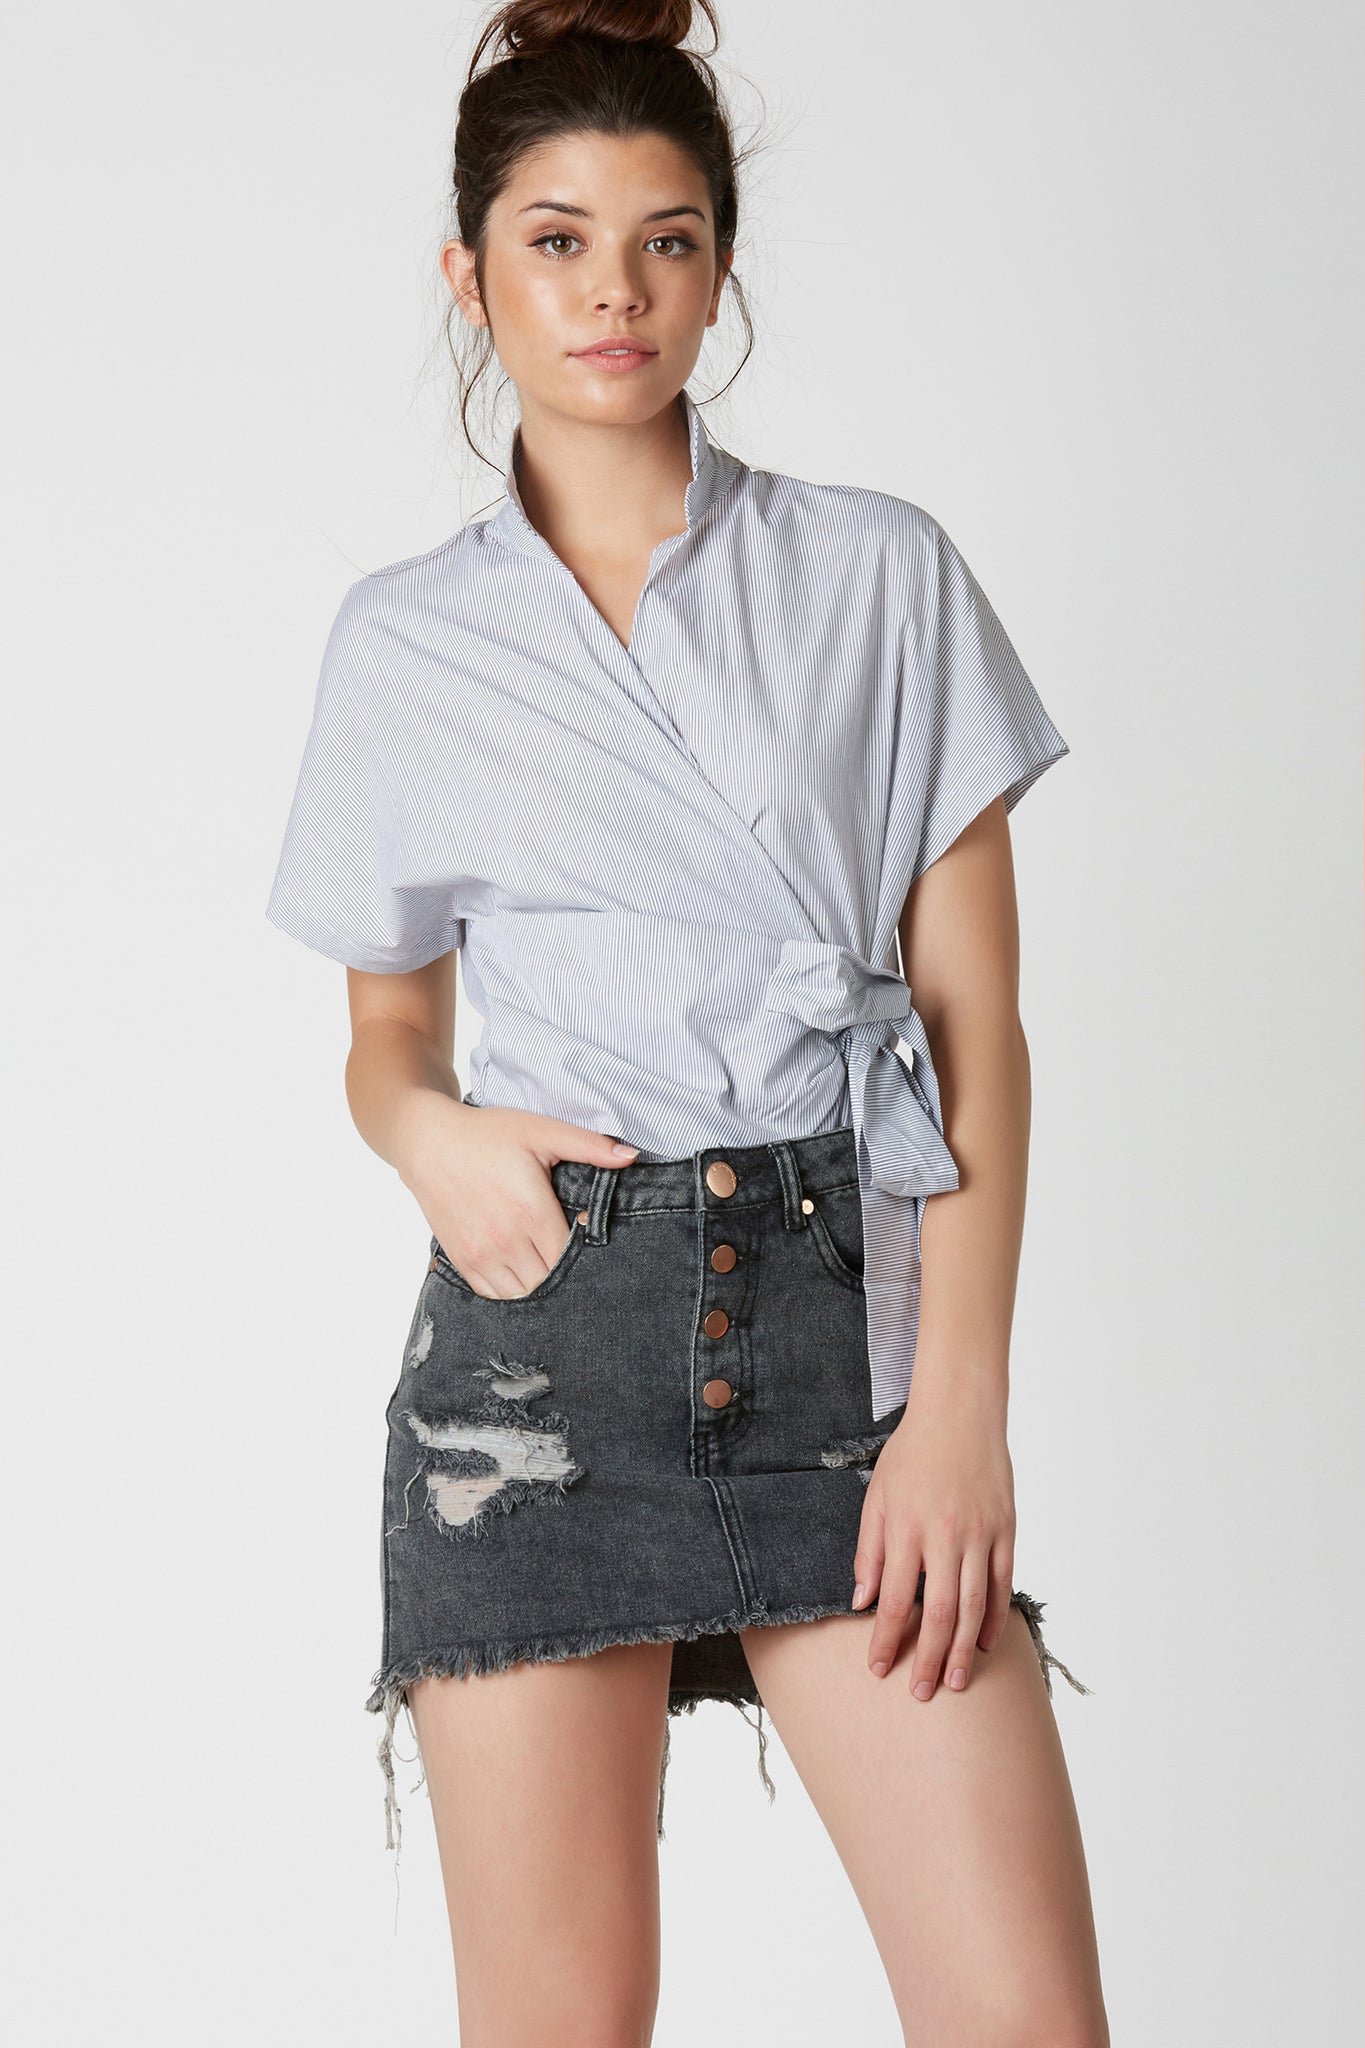 Chic short sleeve blouse with pin stripe patterns throughout. Deep V-neckline with wrap over front and ties for closure.